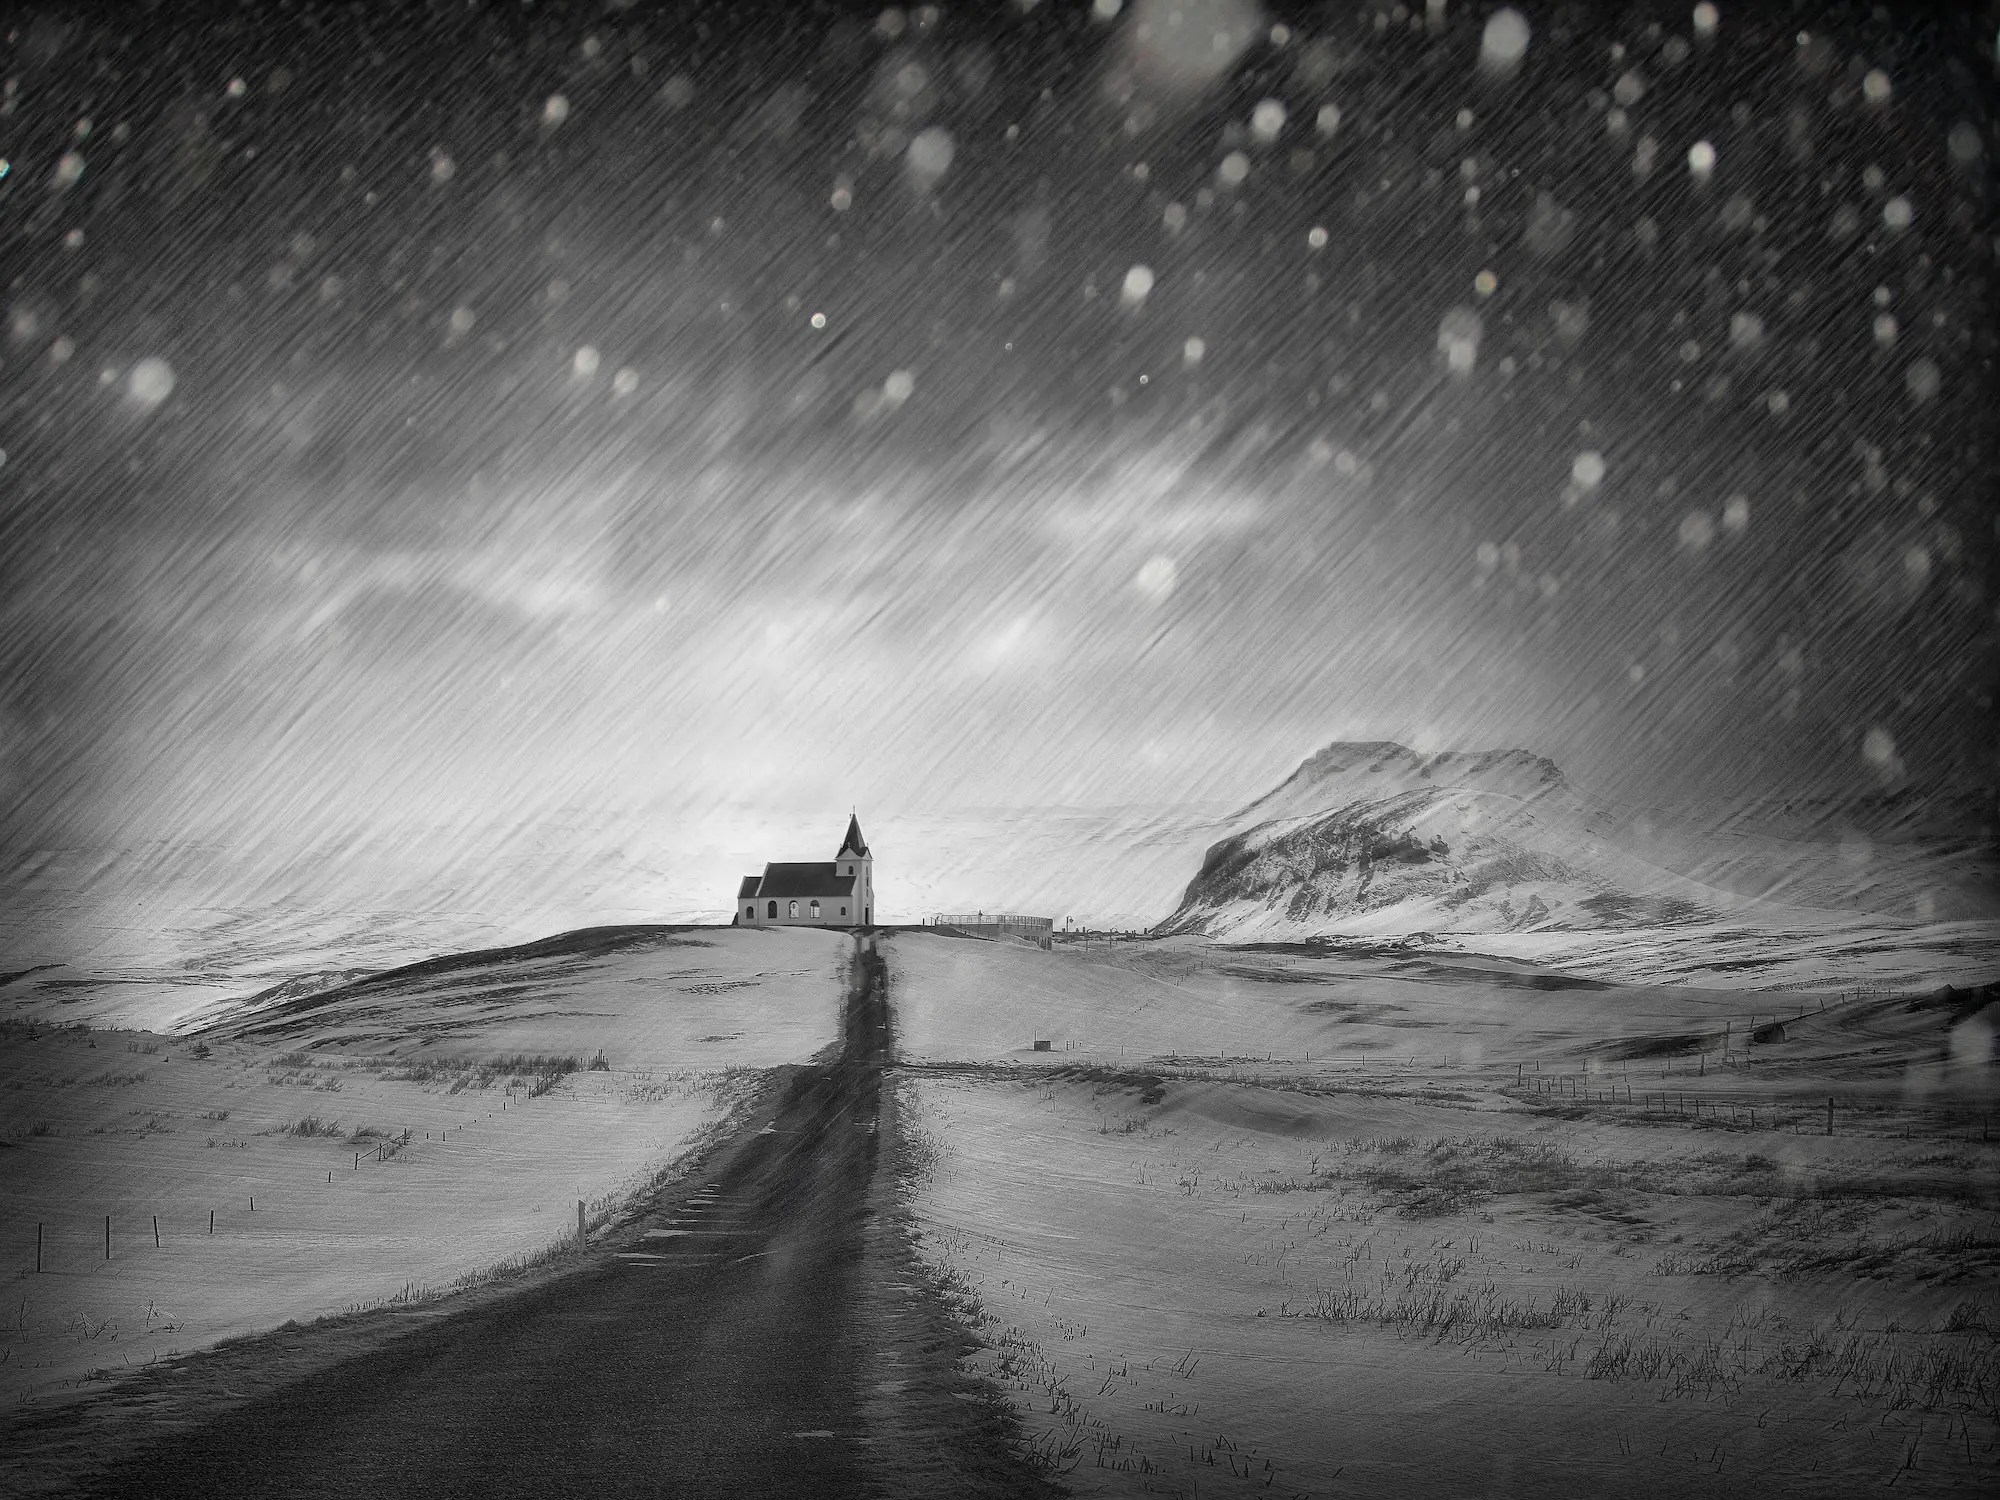 Guy Havell won the black and white image contest with this evocative photo of Ingjaldsholl Church on the Snaefellsnes Peninsula of Iceland.